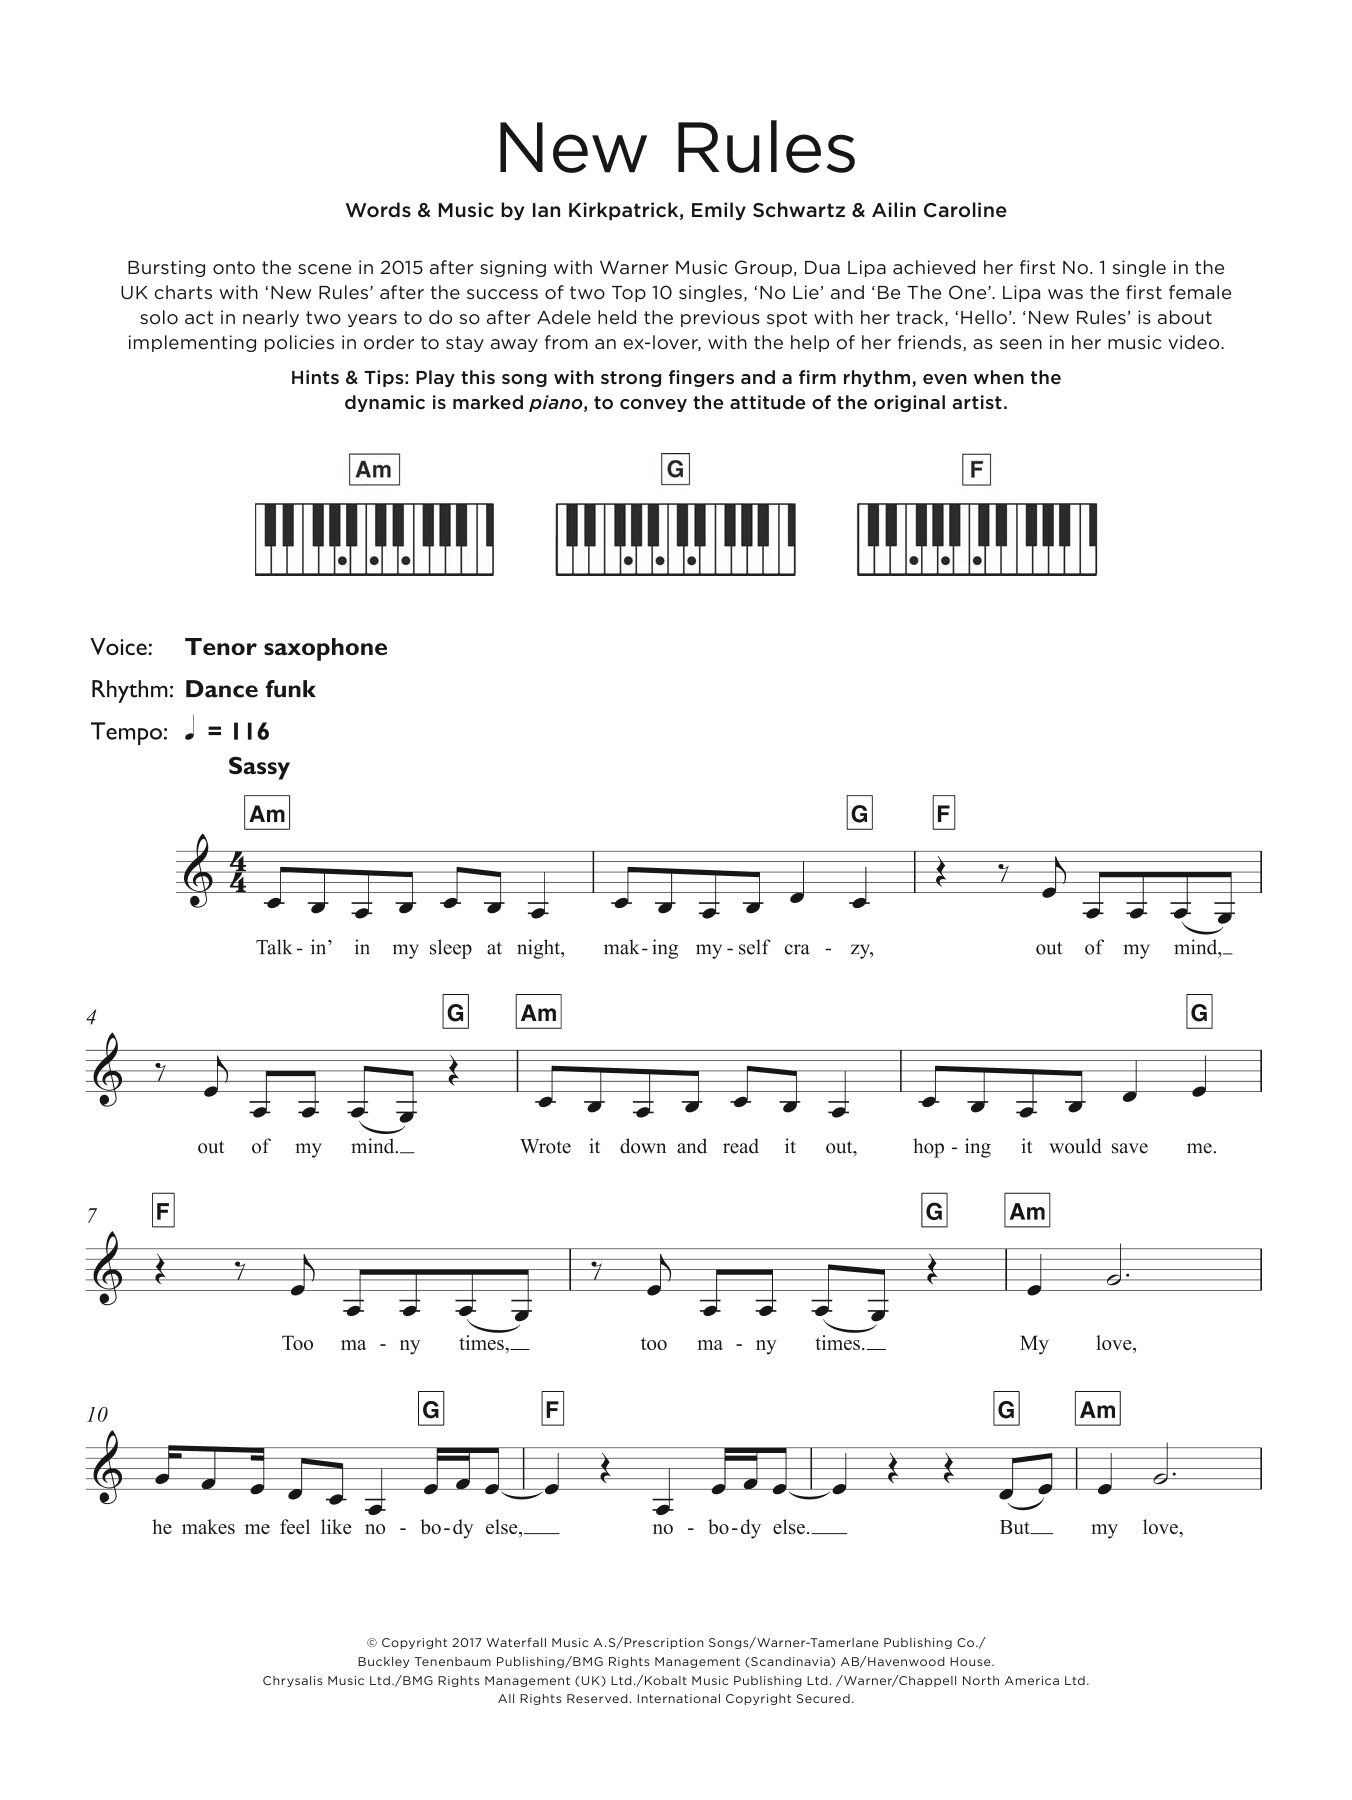 New Rules Sheet Music